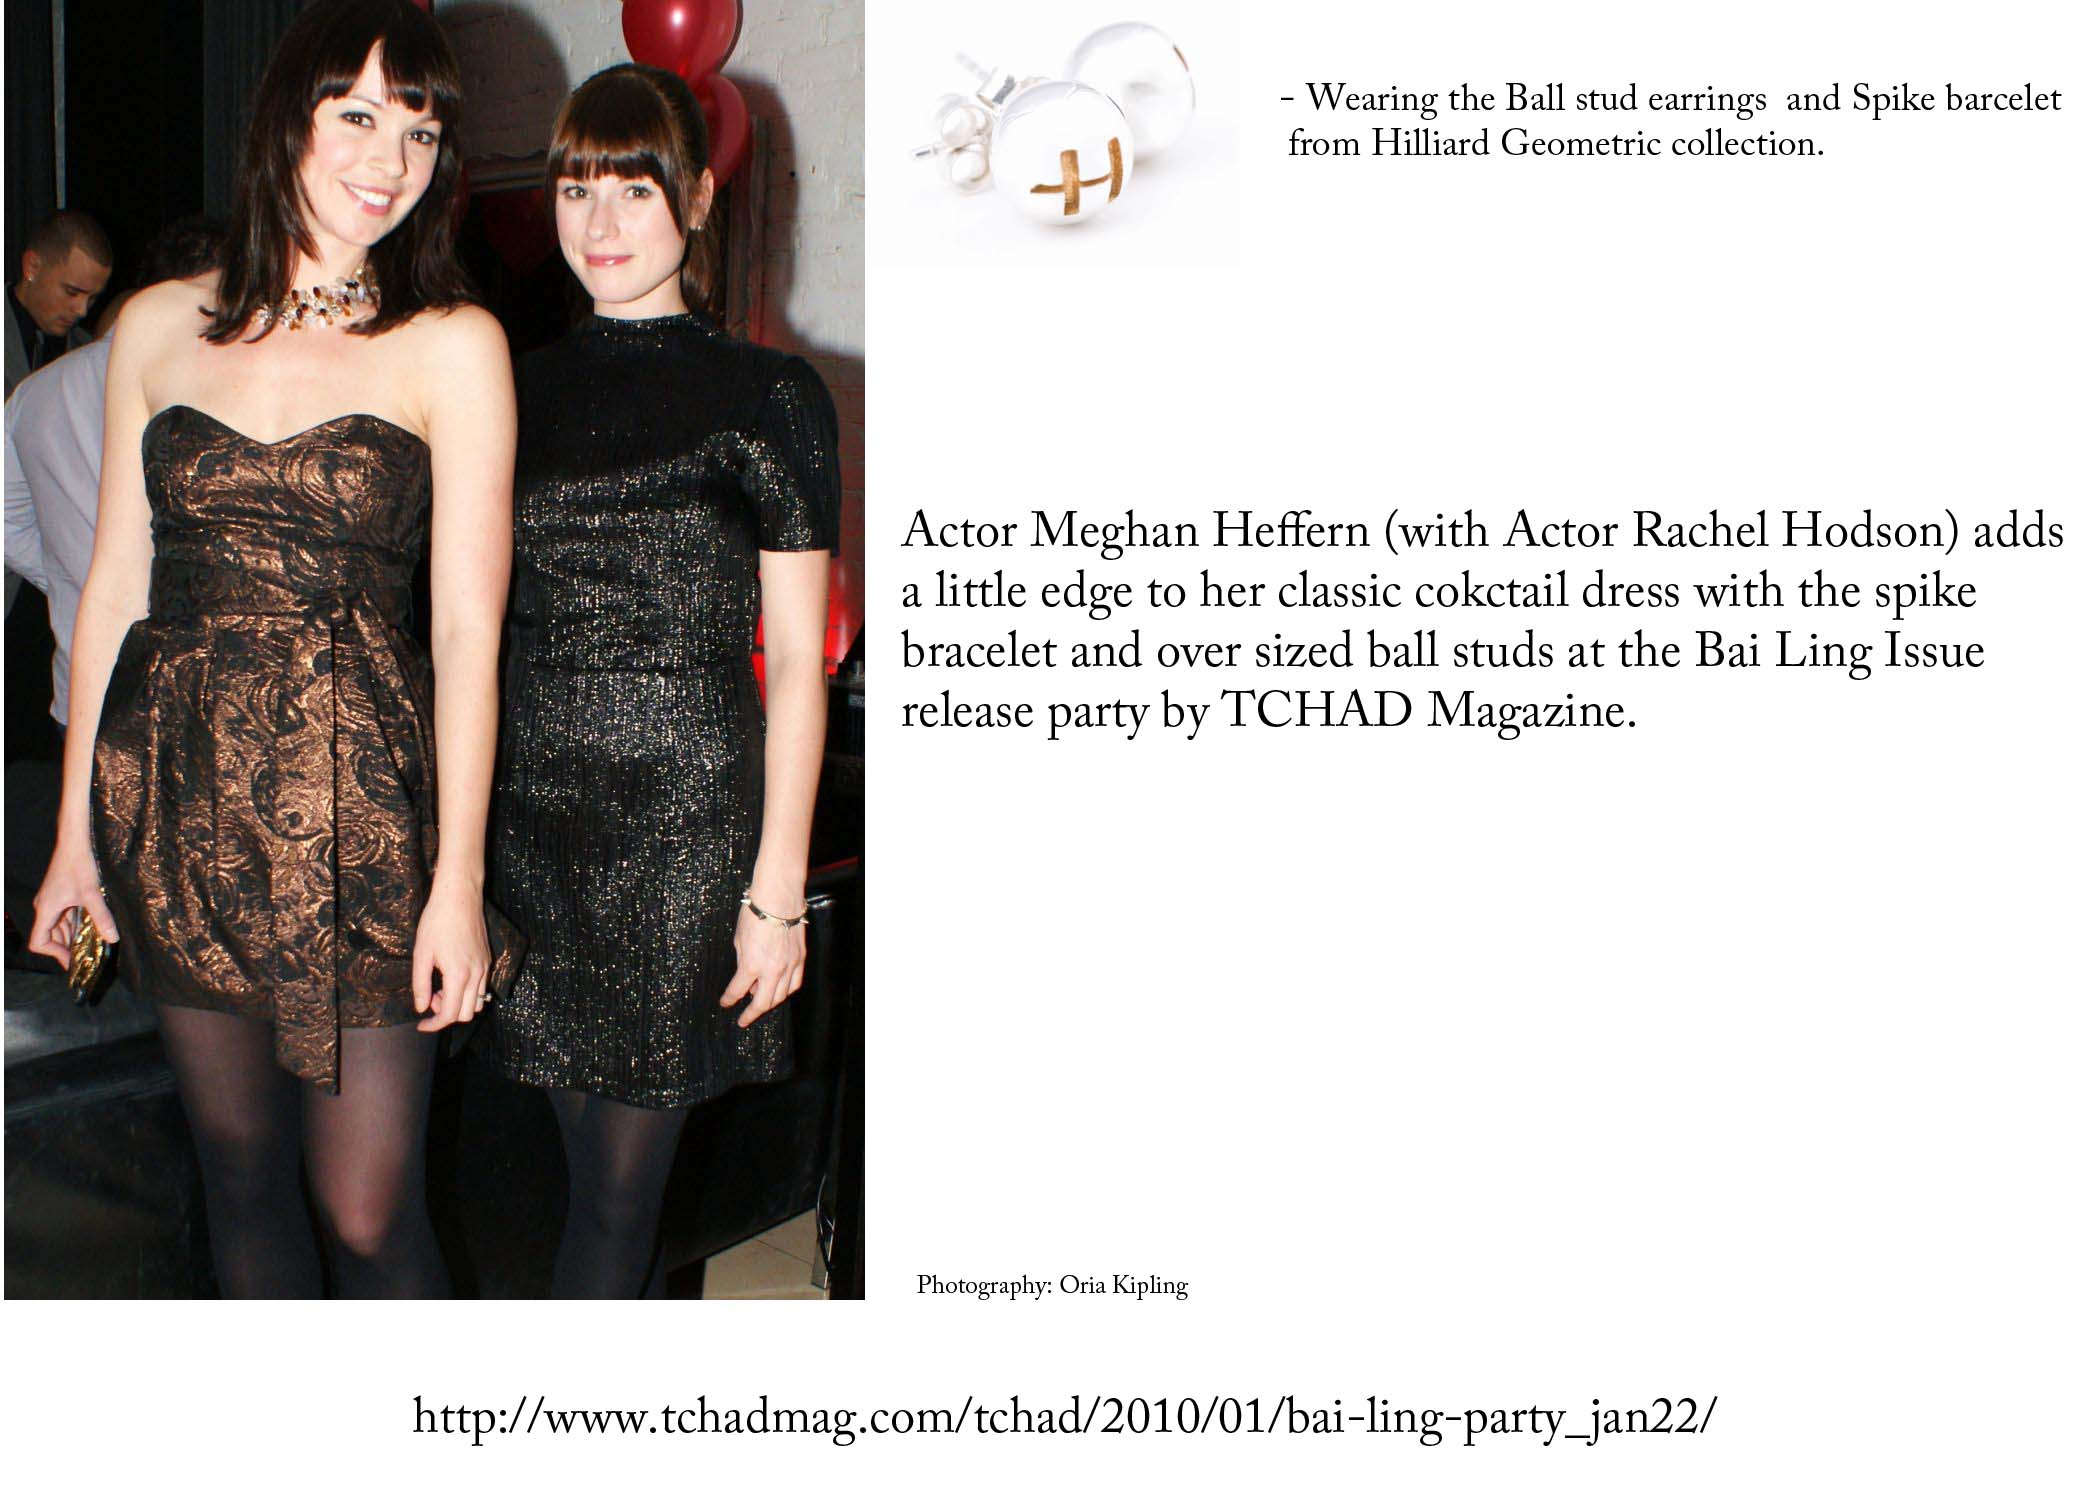 Bai Ling release party